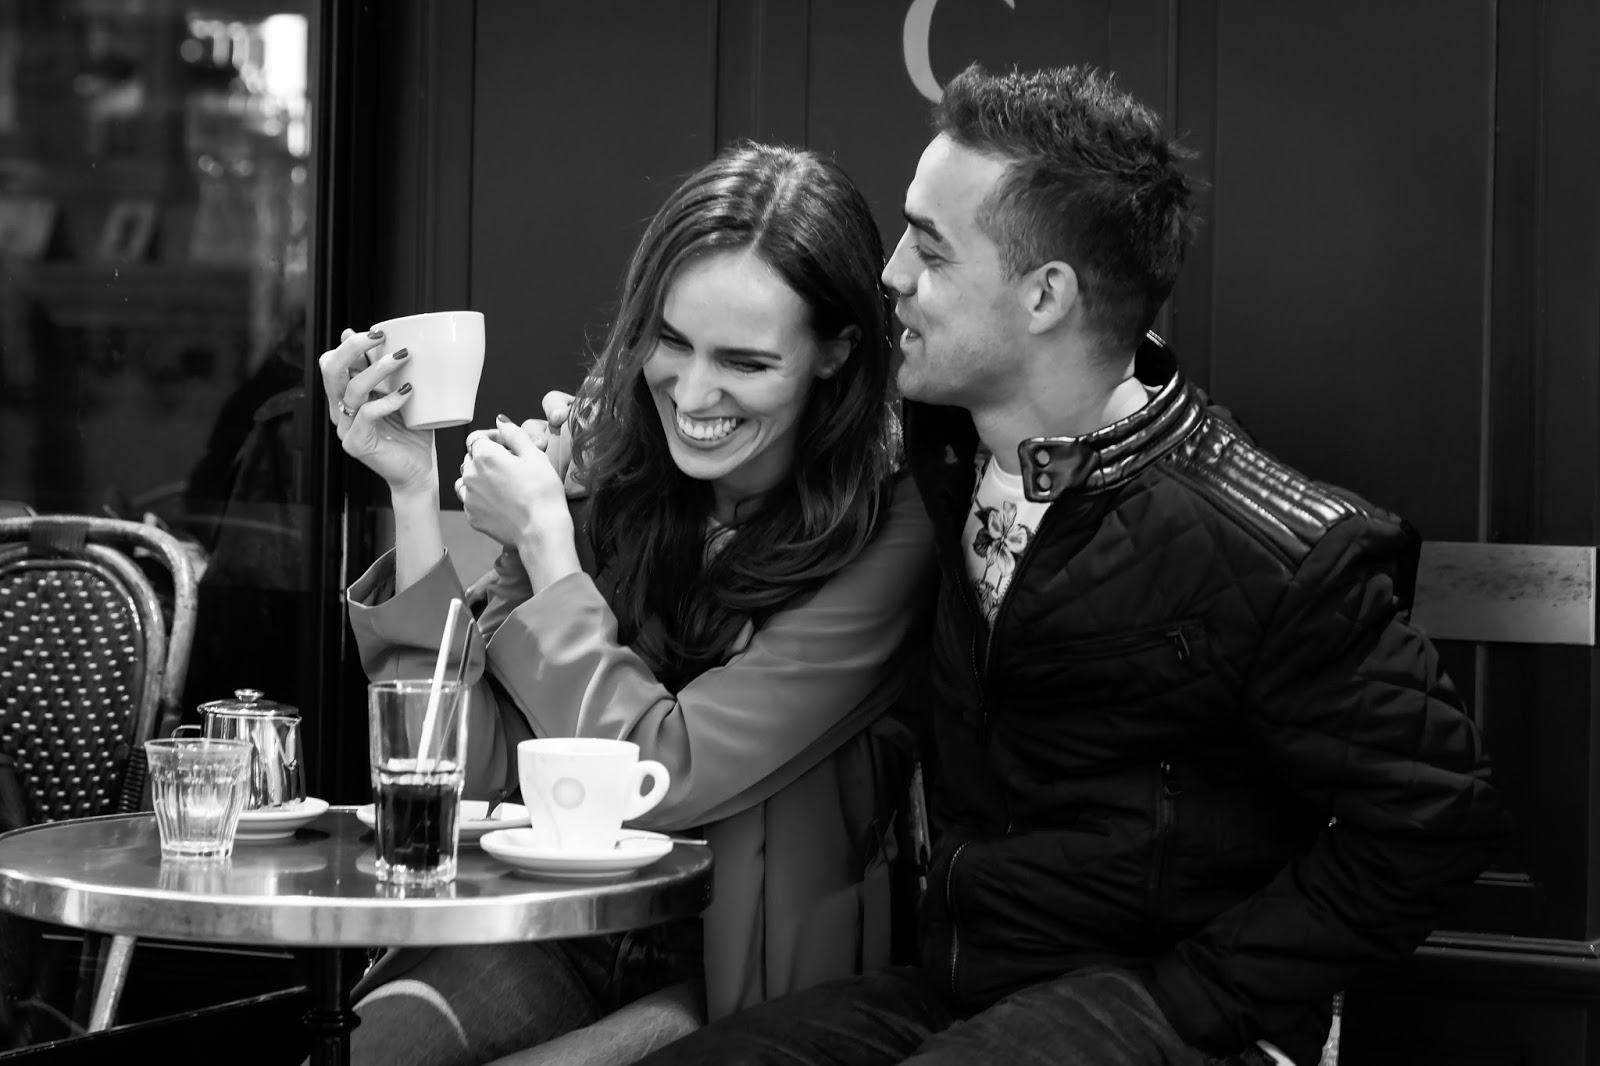 couple laughing photo black white cafe